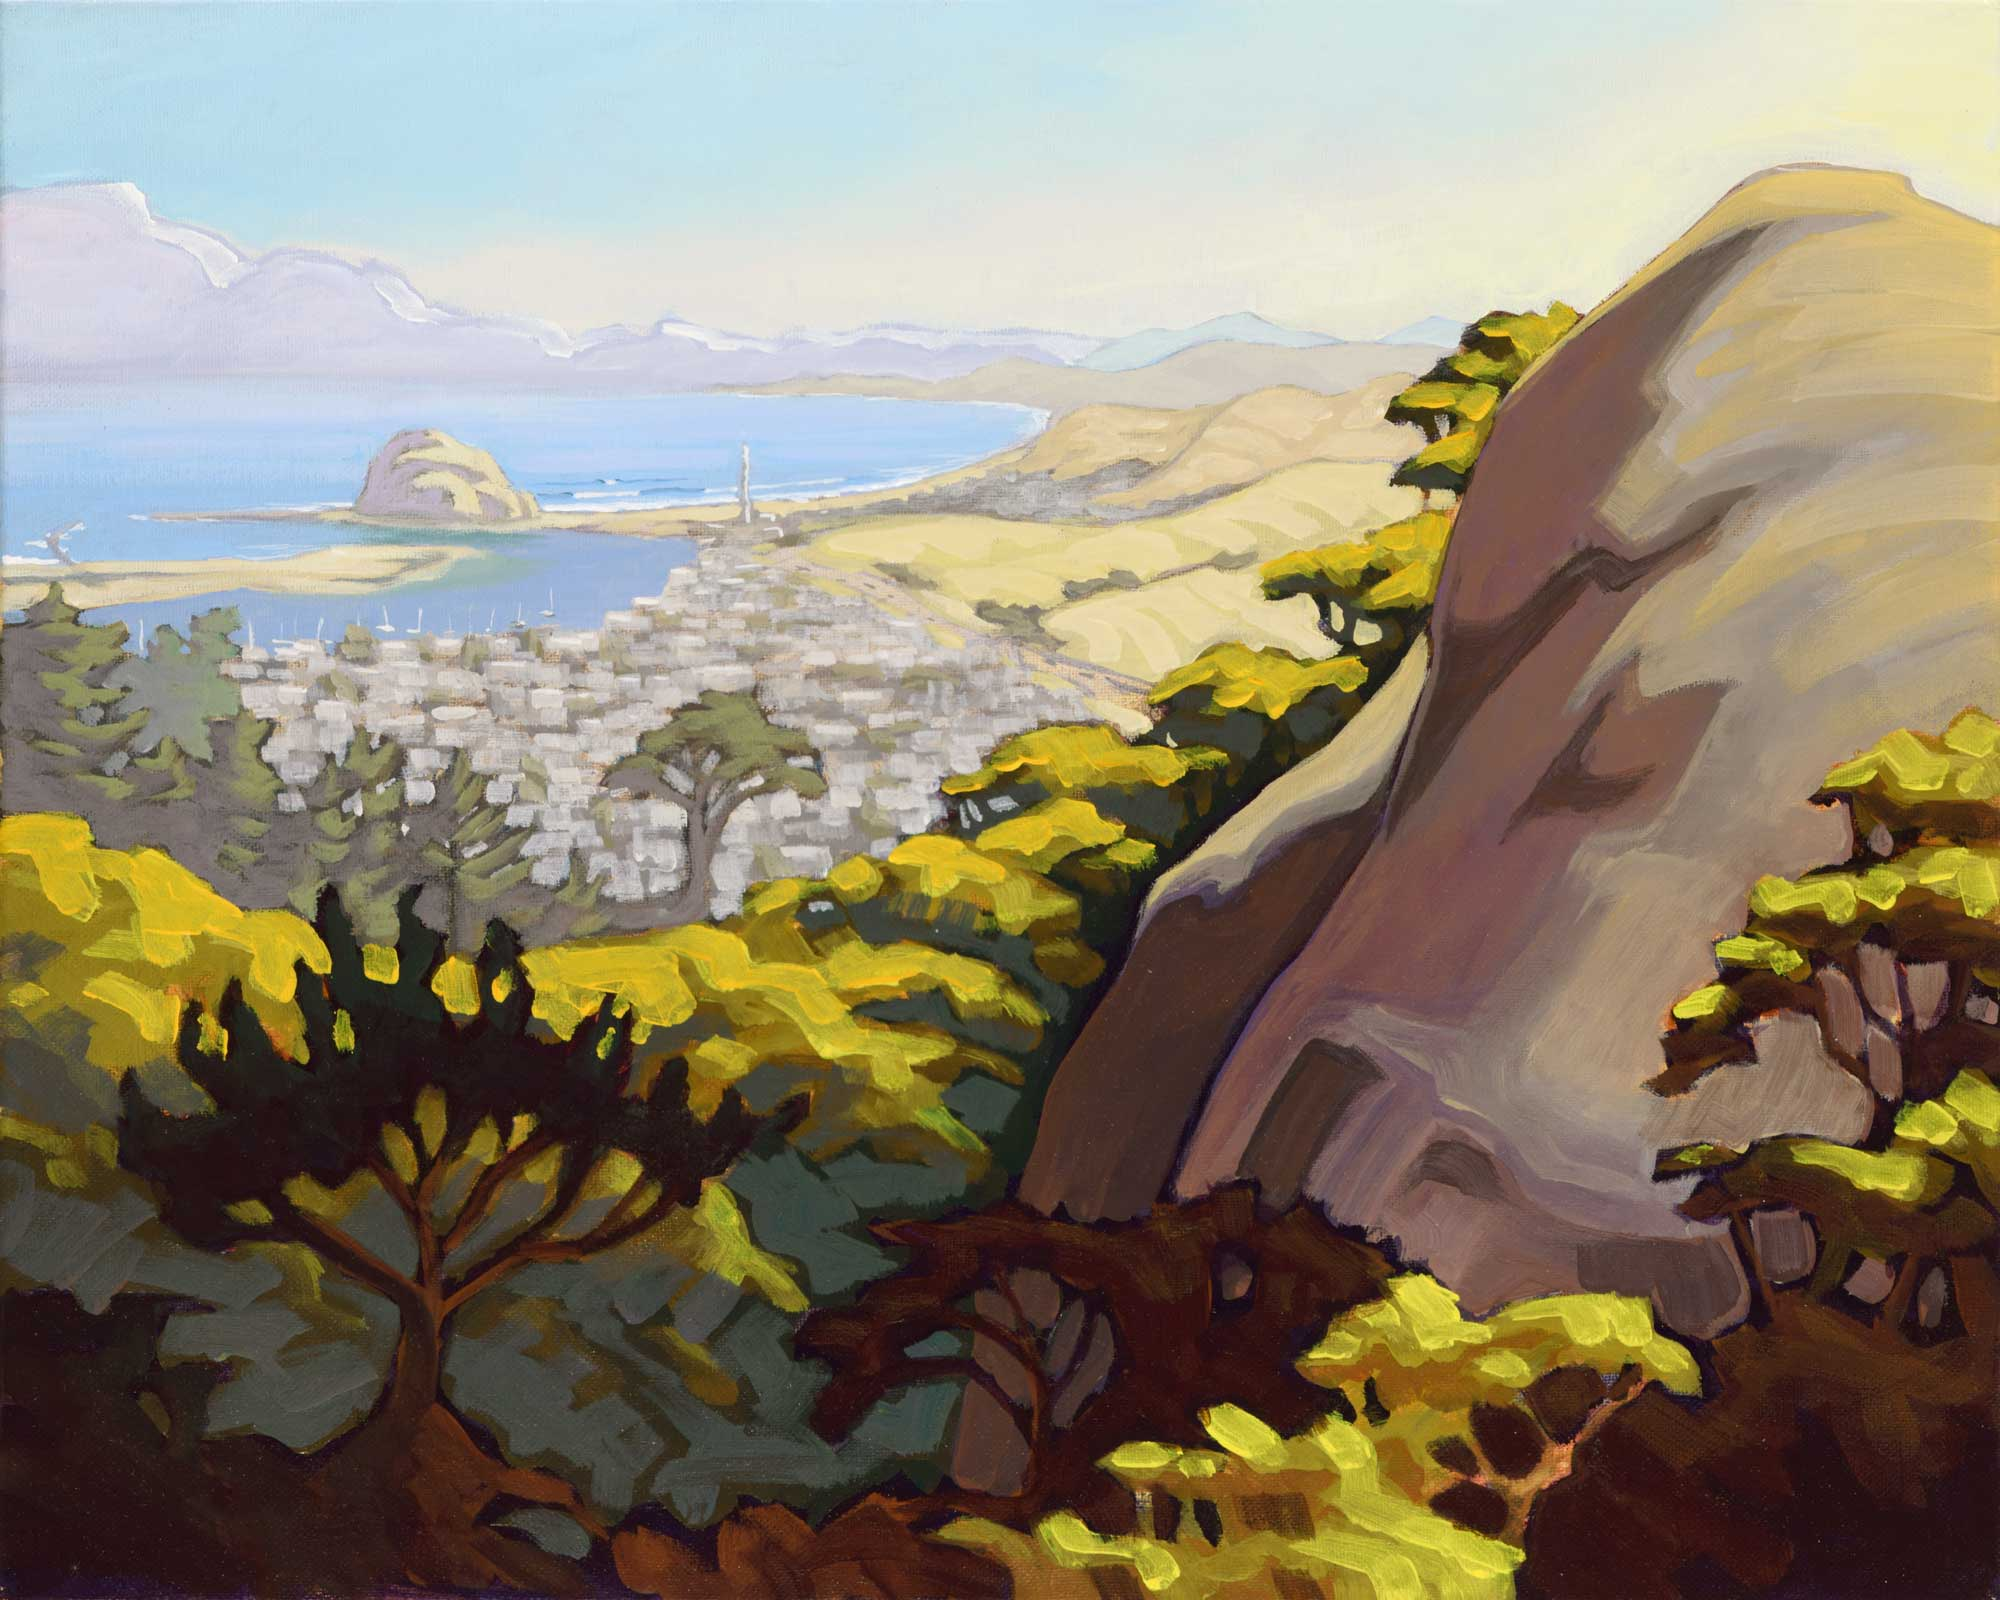 Plein air artwork showing the view of Morro Bay and Morro Rock from Black mountain on the central California coast